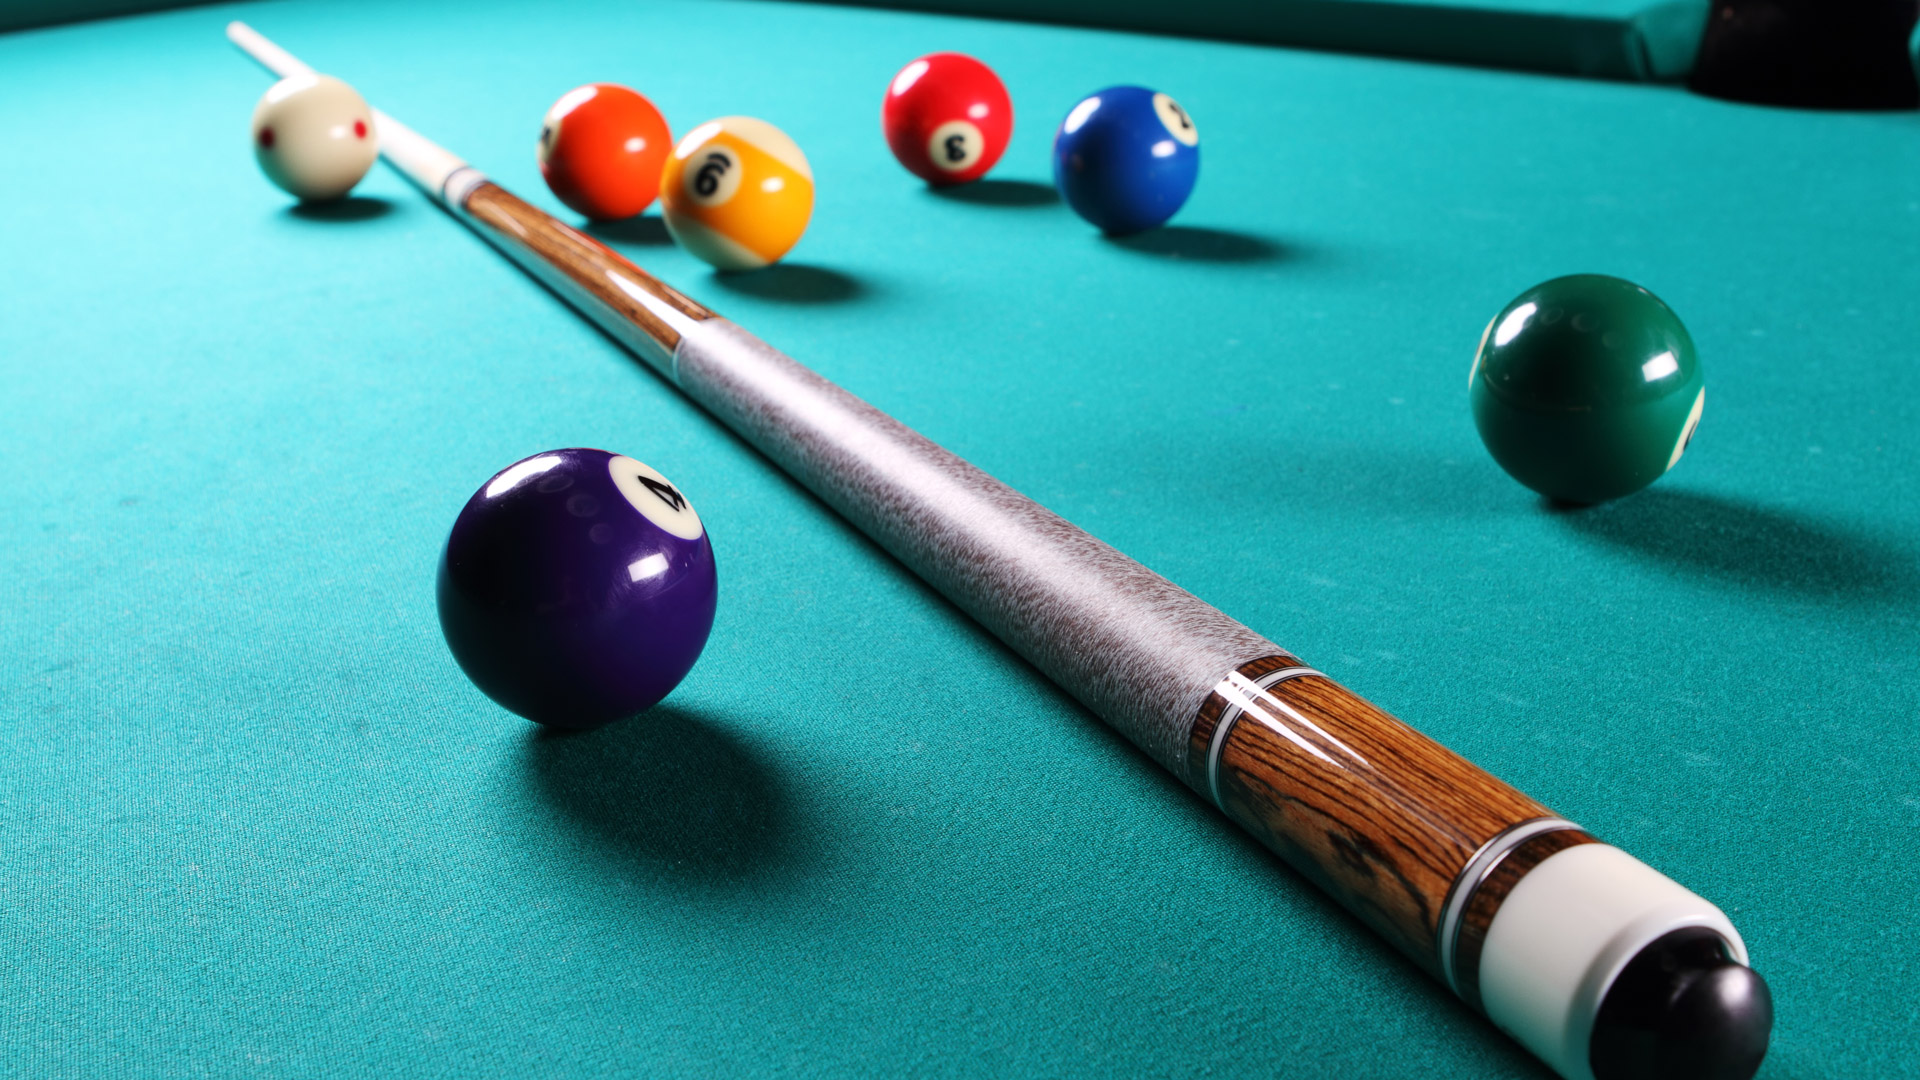 Billard Backgrounds, Compatible - PC, Mobile, Gadgets| 1920x1080 px